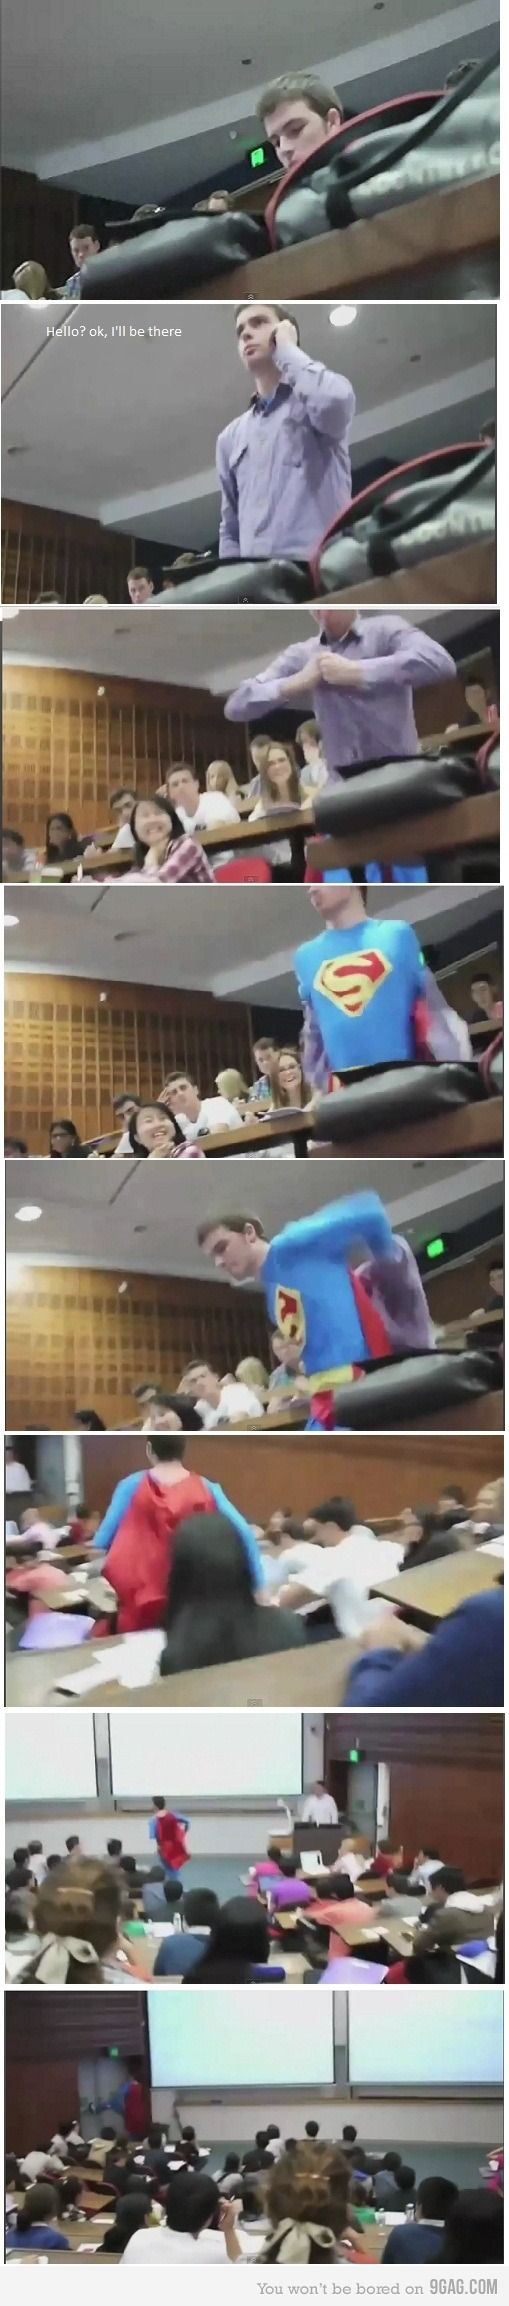 Superman in college.  I wish this would happen in one of my classes.